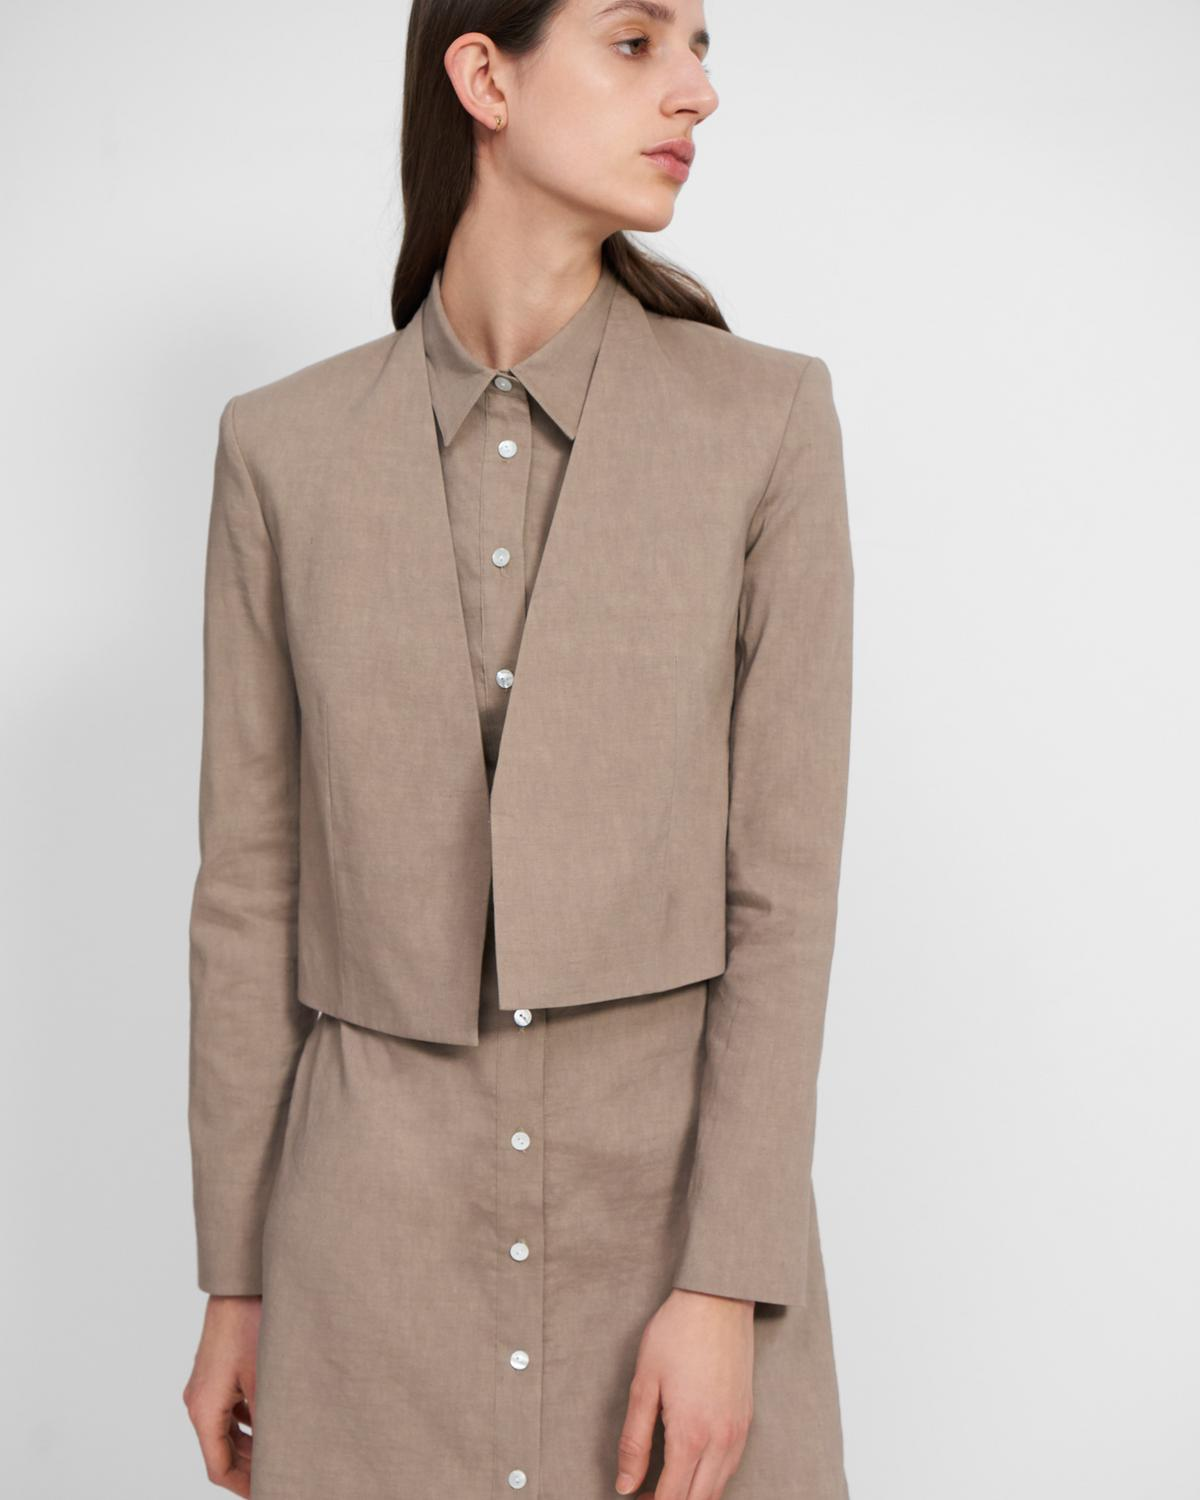 Collarless Blazer in Good Linen